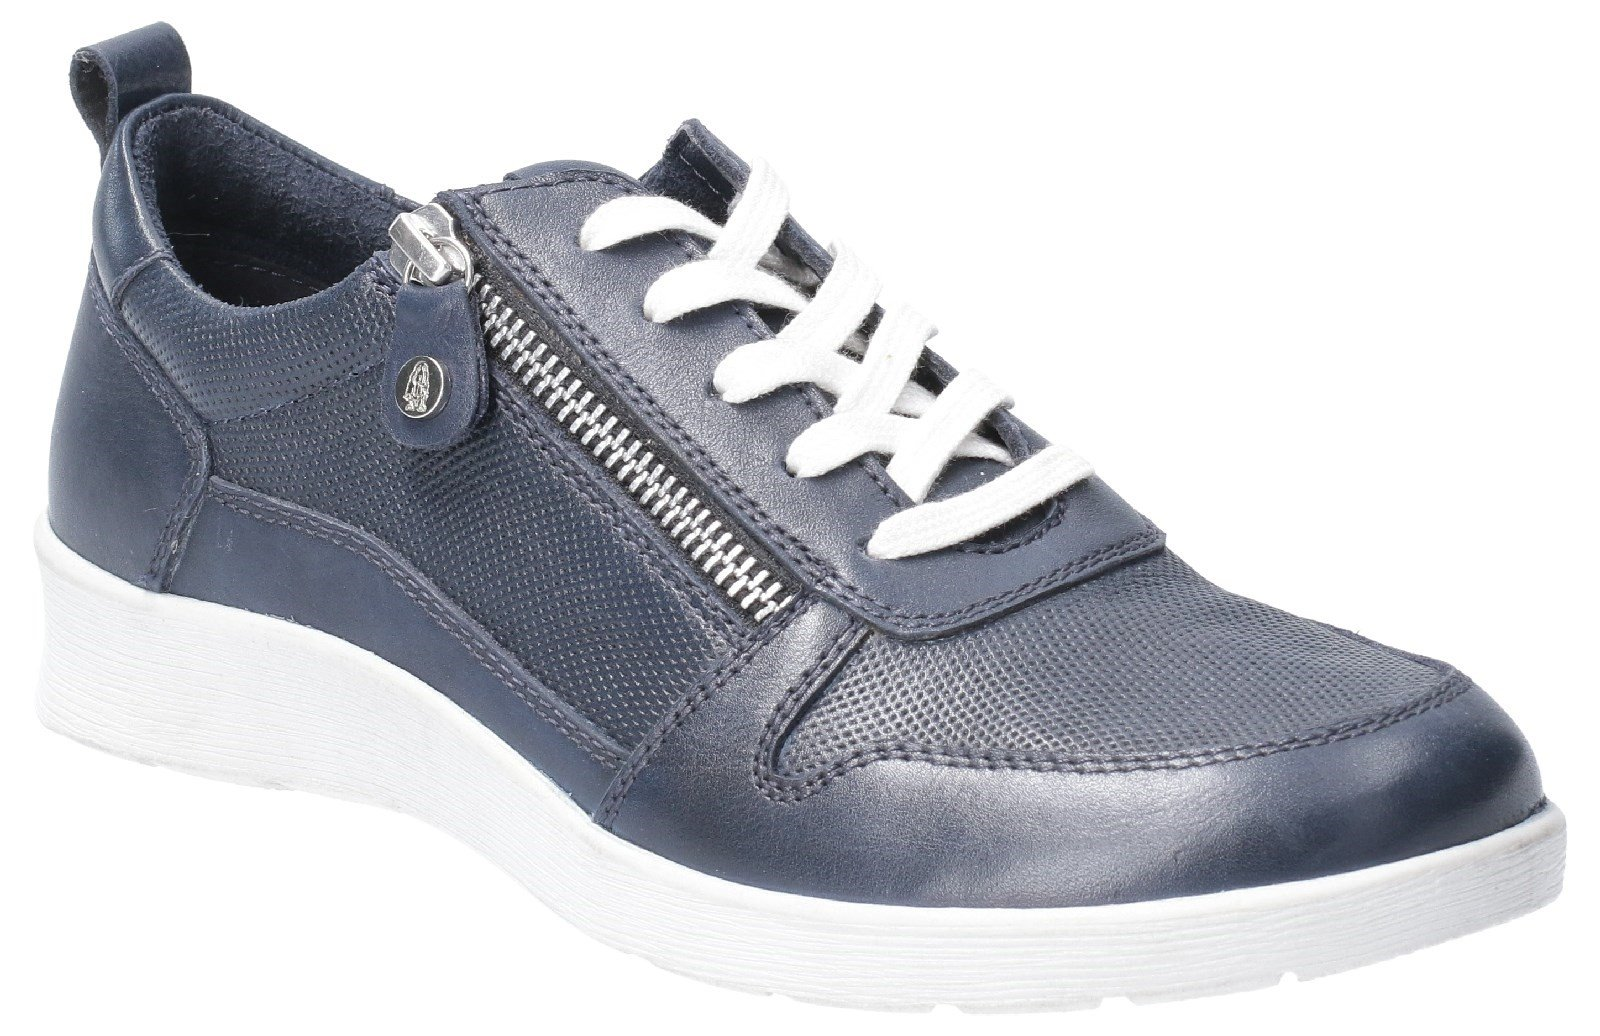 Hush Puppies Women's Roo Zip Up Lace Up Trainer Various Colours 29233 - Navy 3